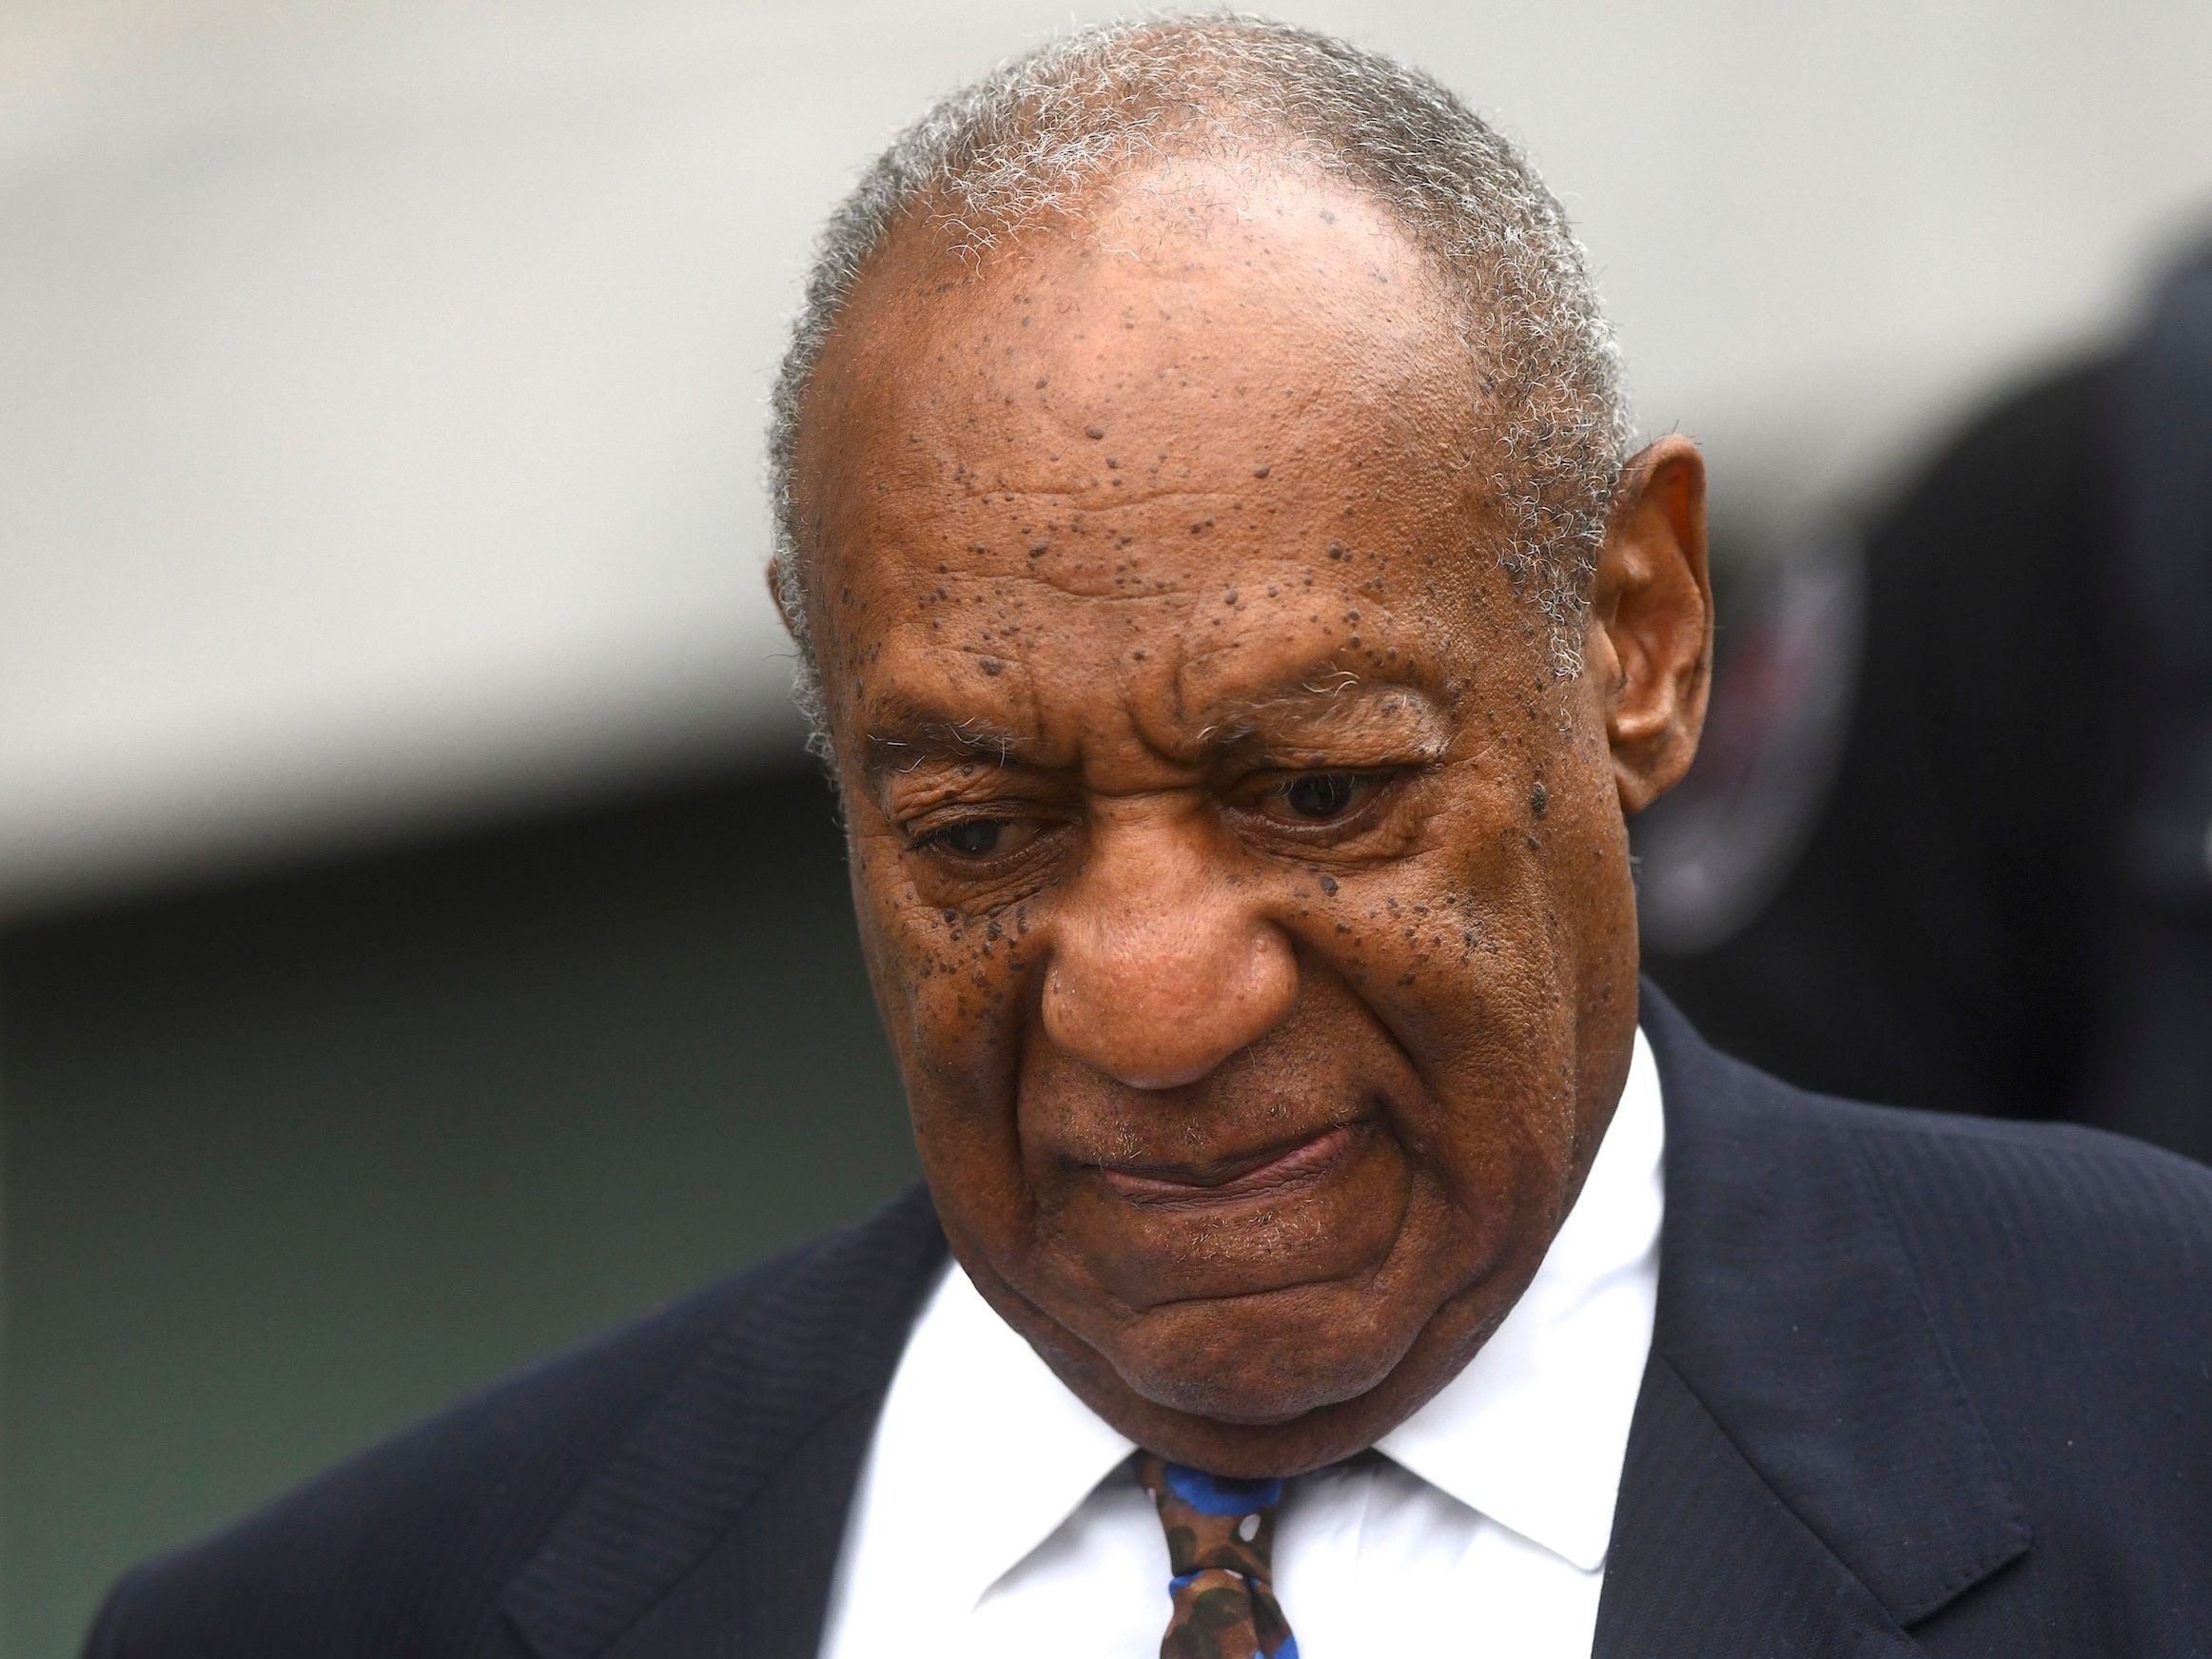 Bill Cosby Sentenced To 3-10 Years For Sexual Assault